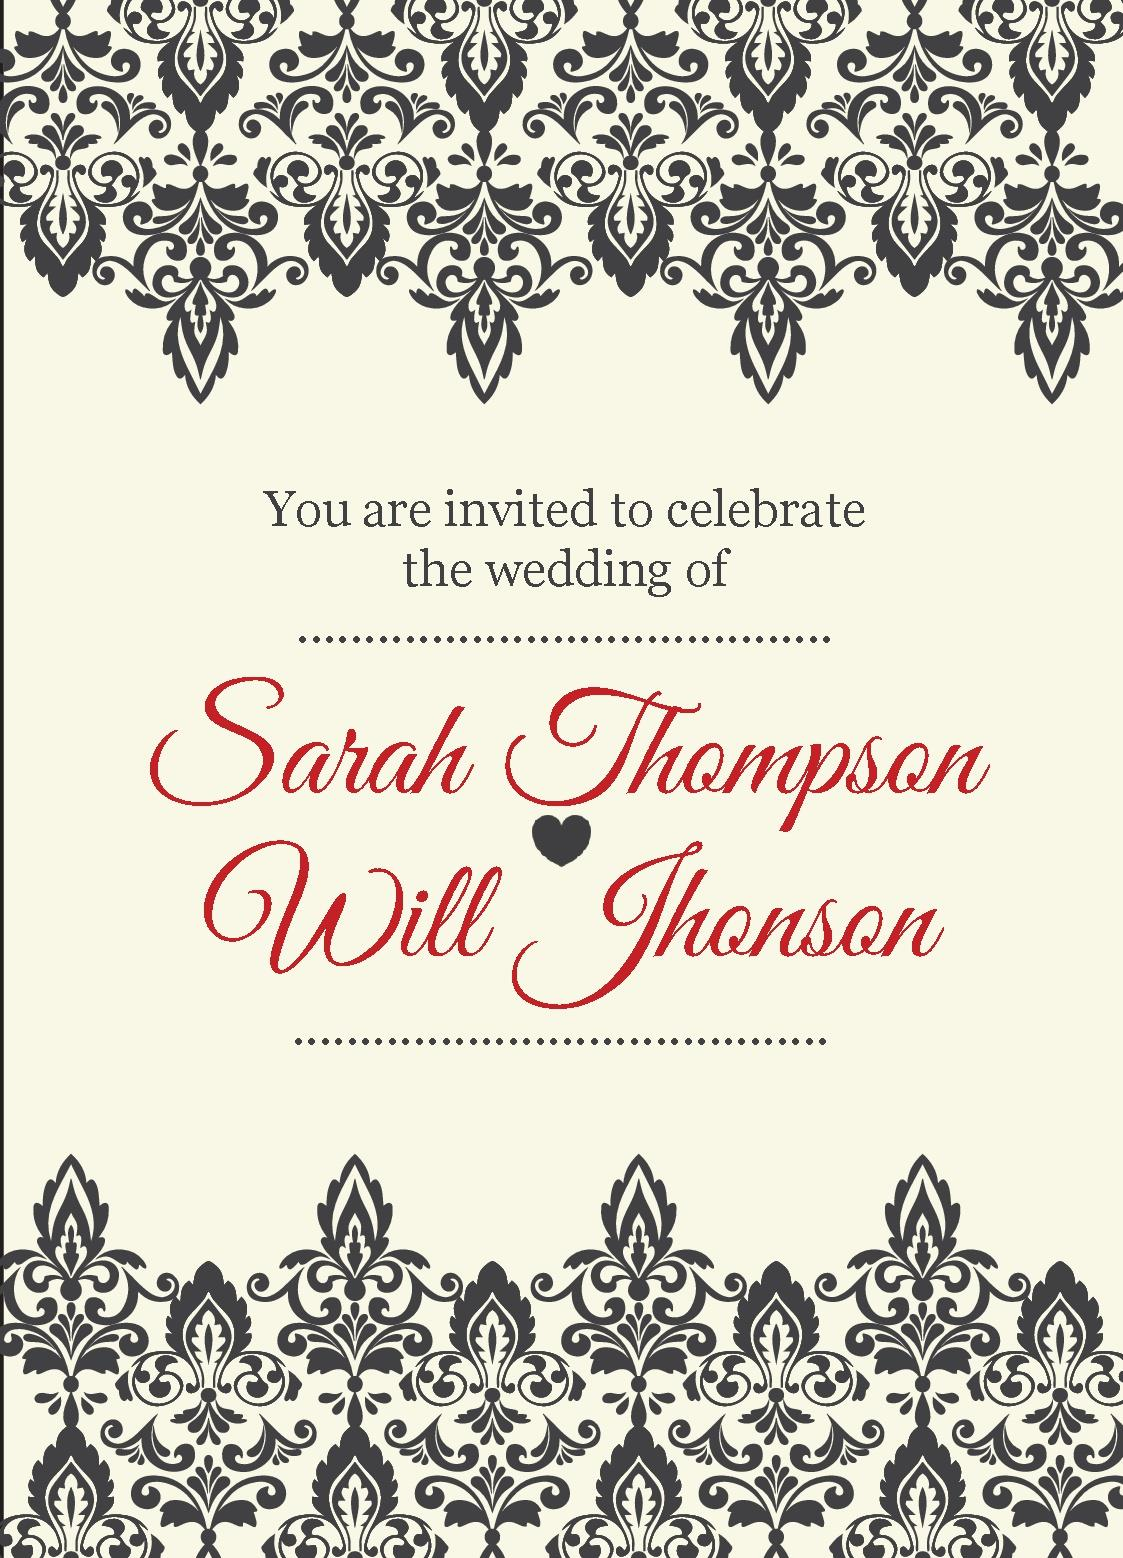 Free invitations templates instantprint vintage cards invites design template stopboris Images